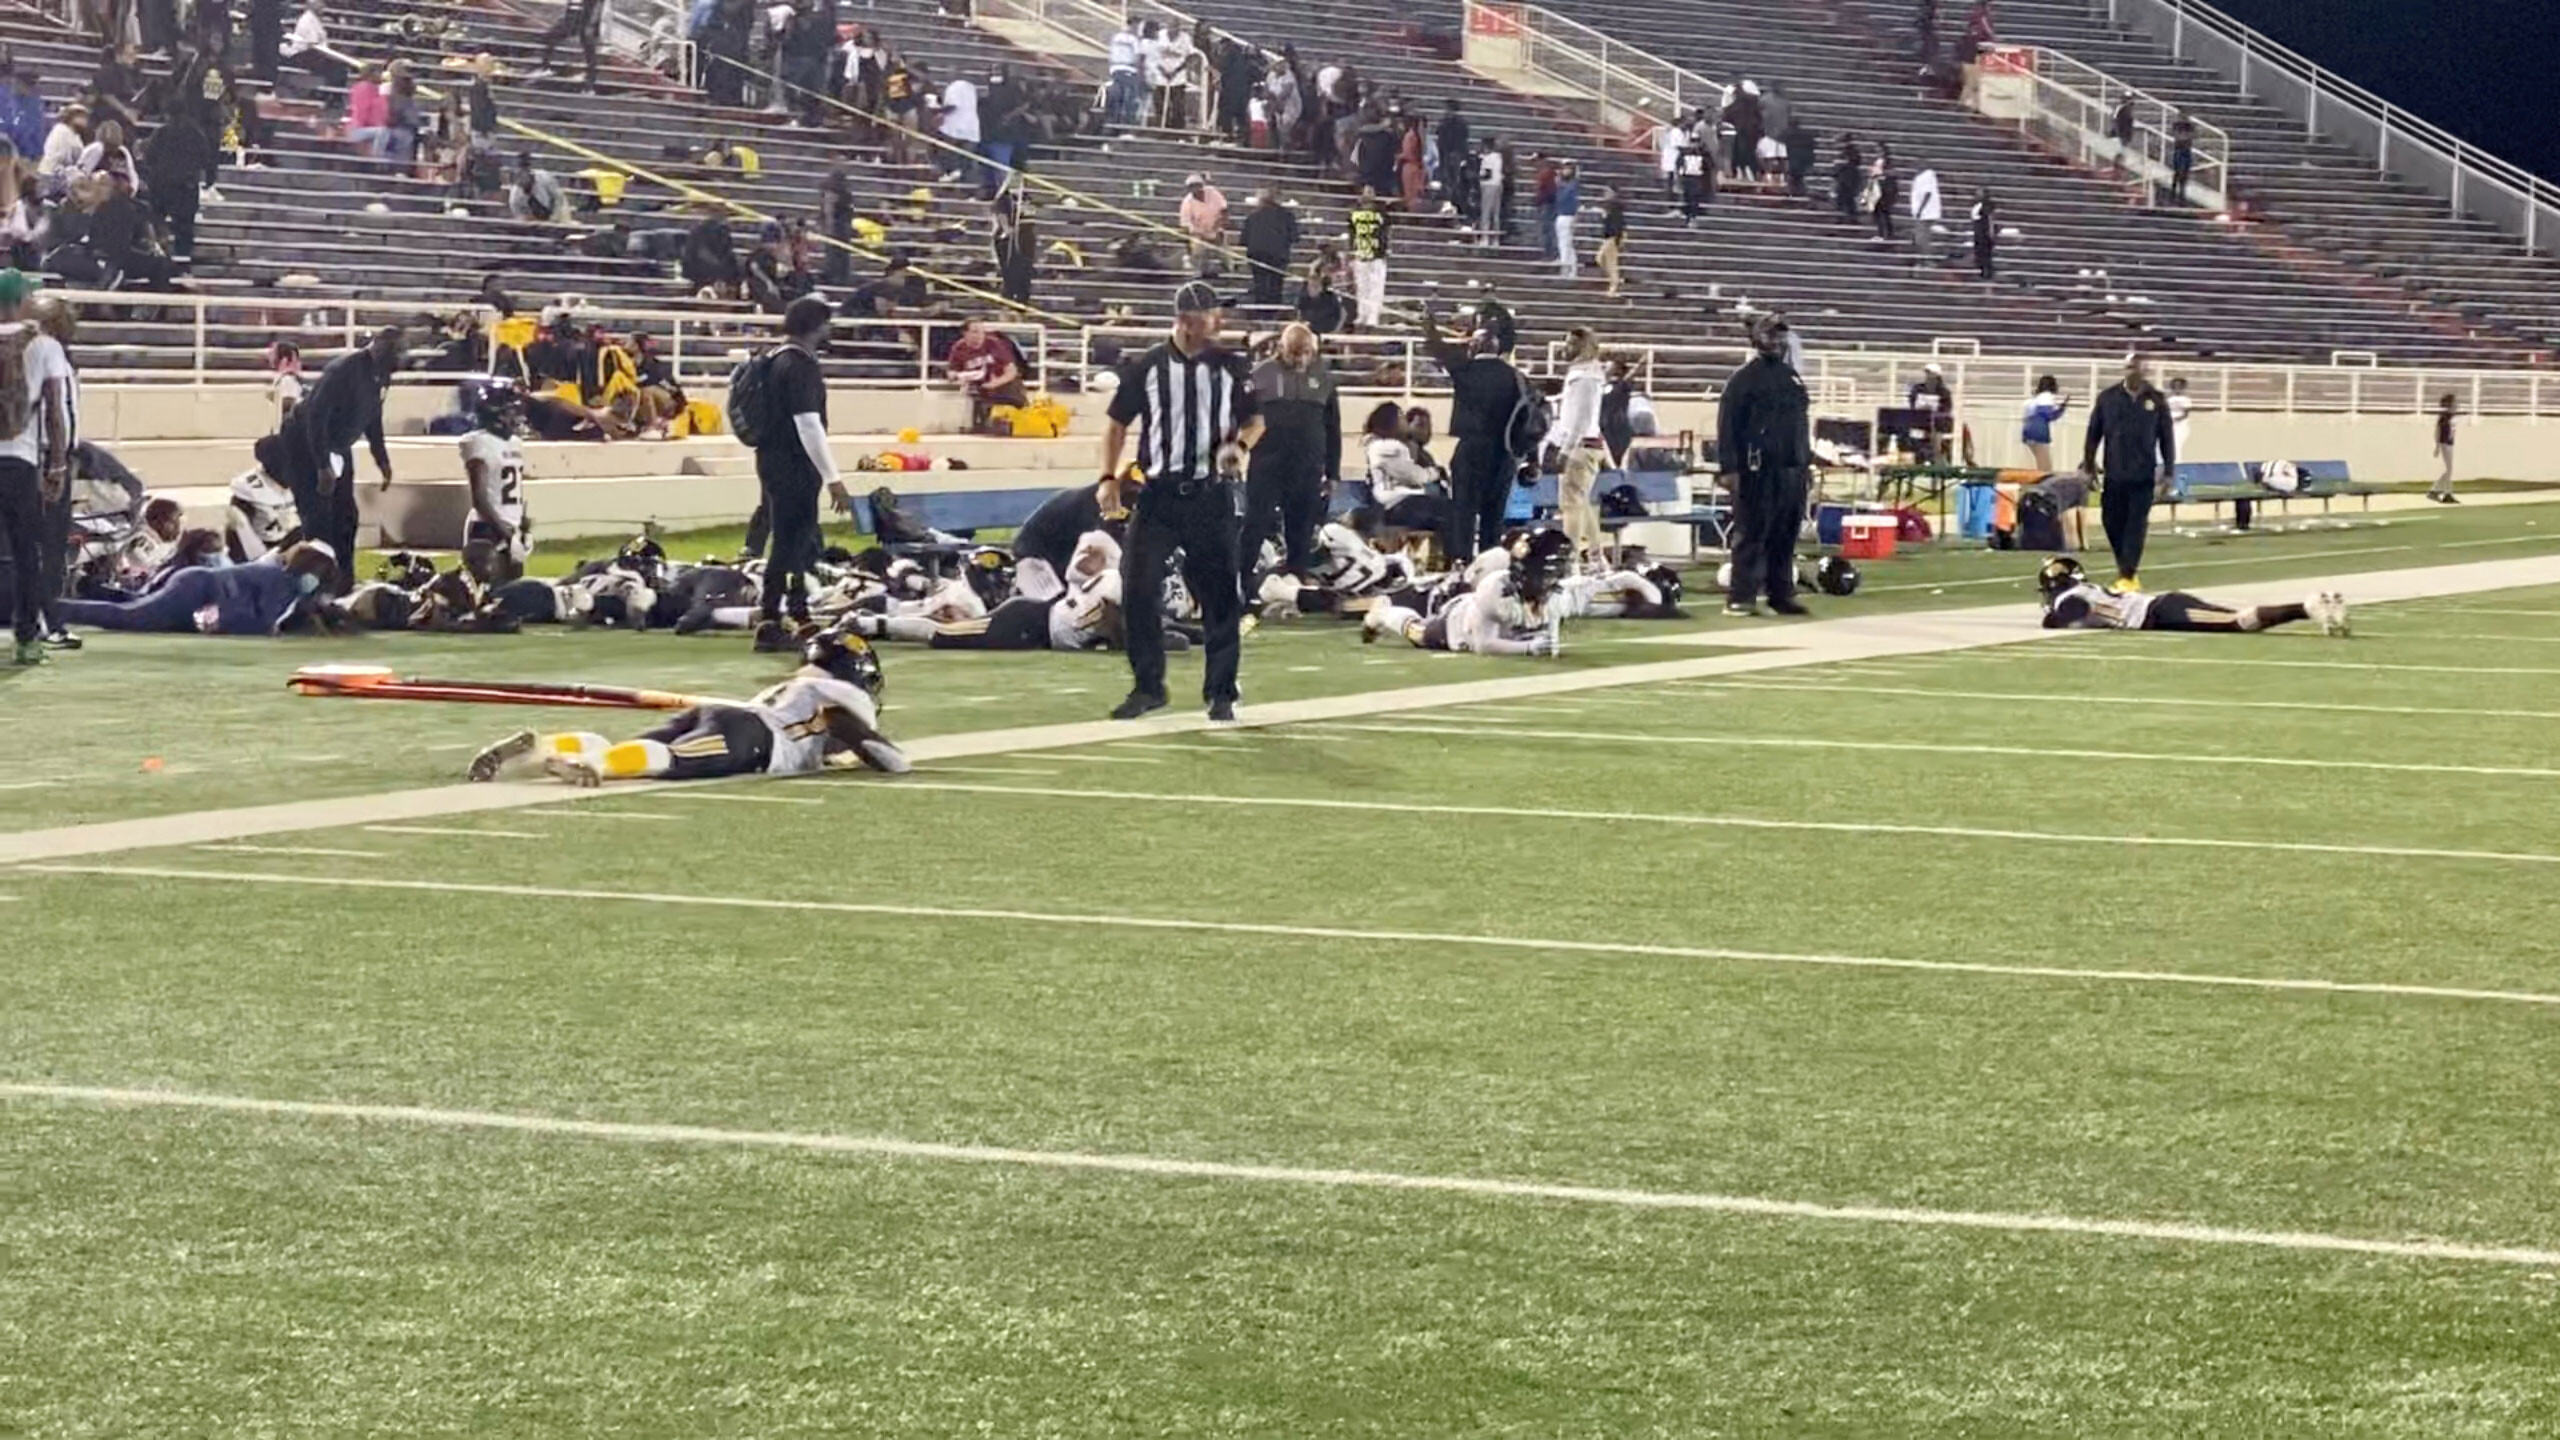 4 people shot outside a high school football game in Mobile, Alabama, police say